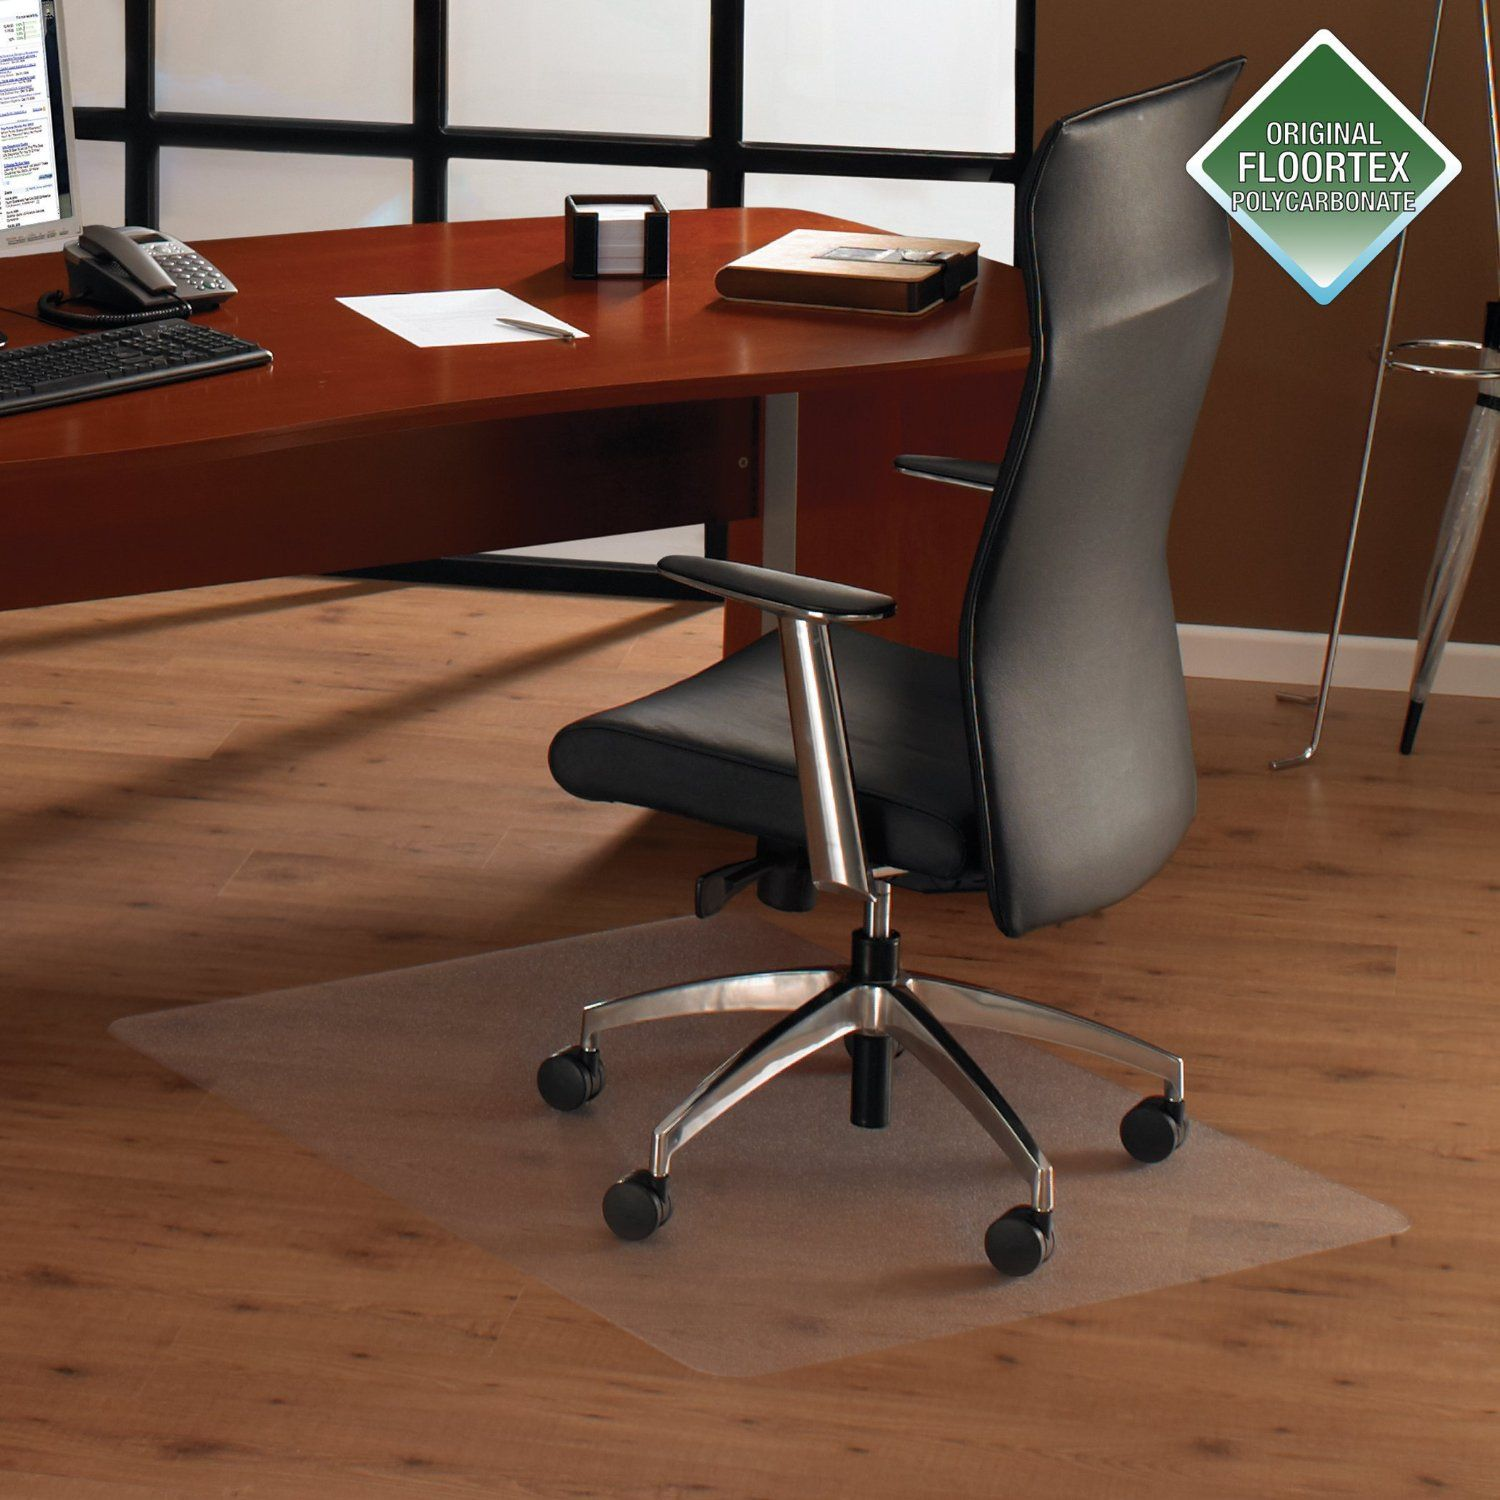 premium floors chair sturdy slip hardwood non mat product x quality floor transparent for desk yoshiko